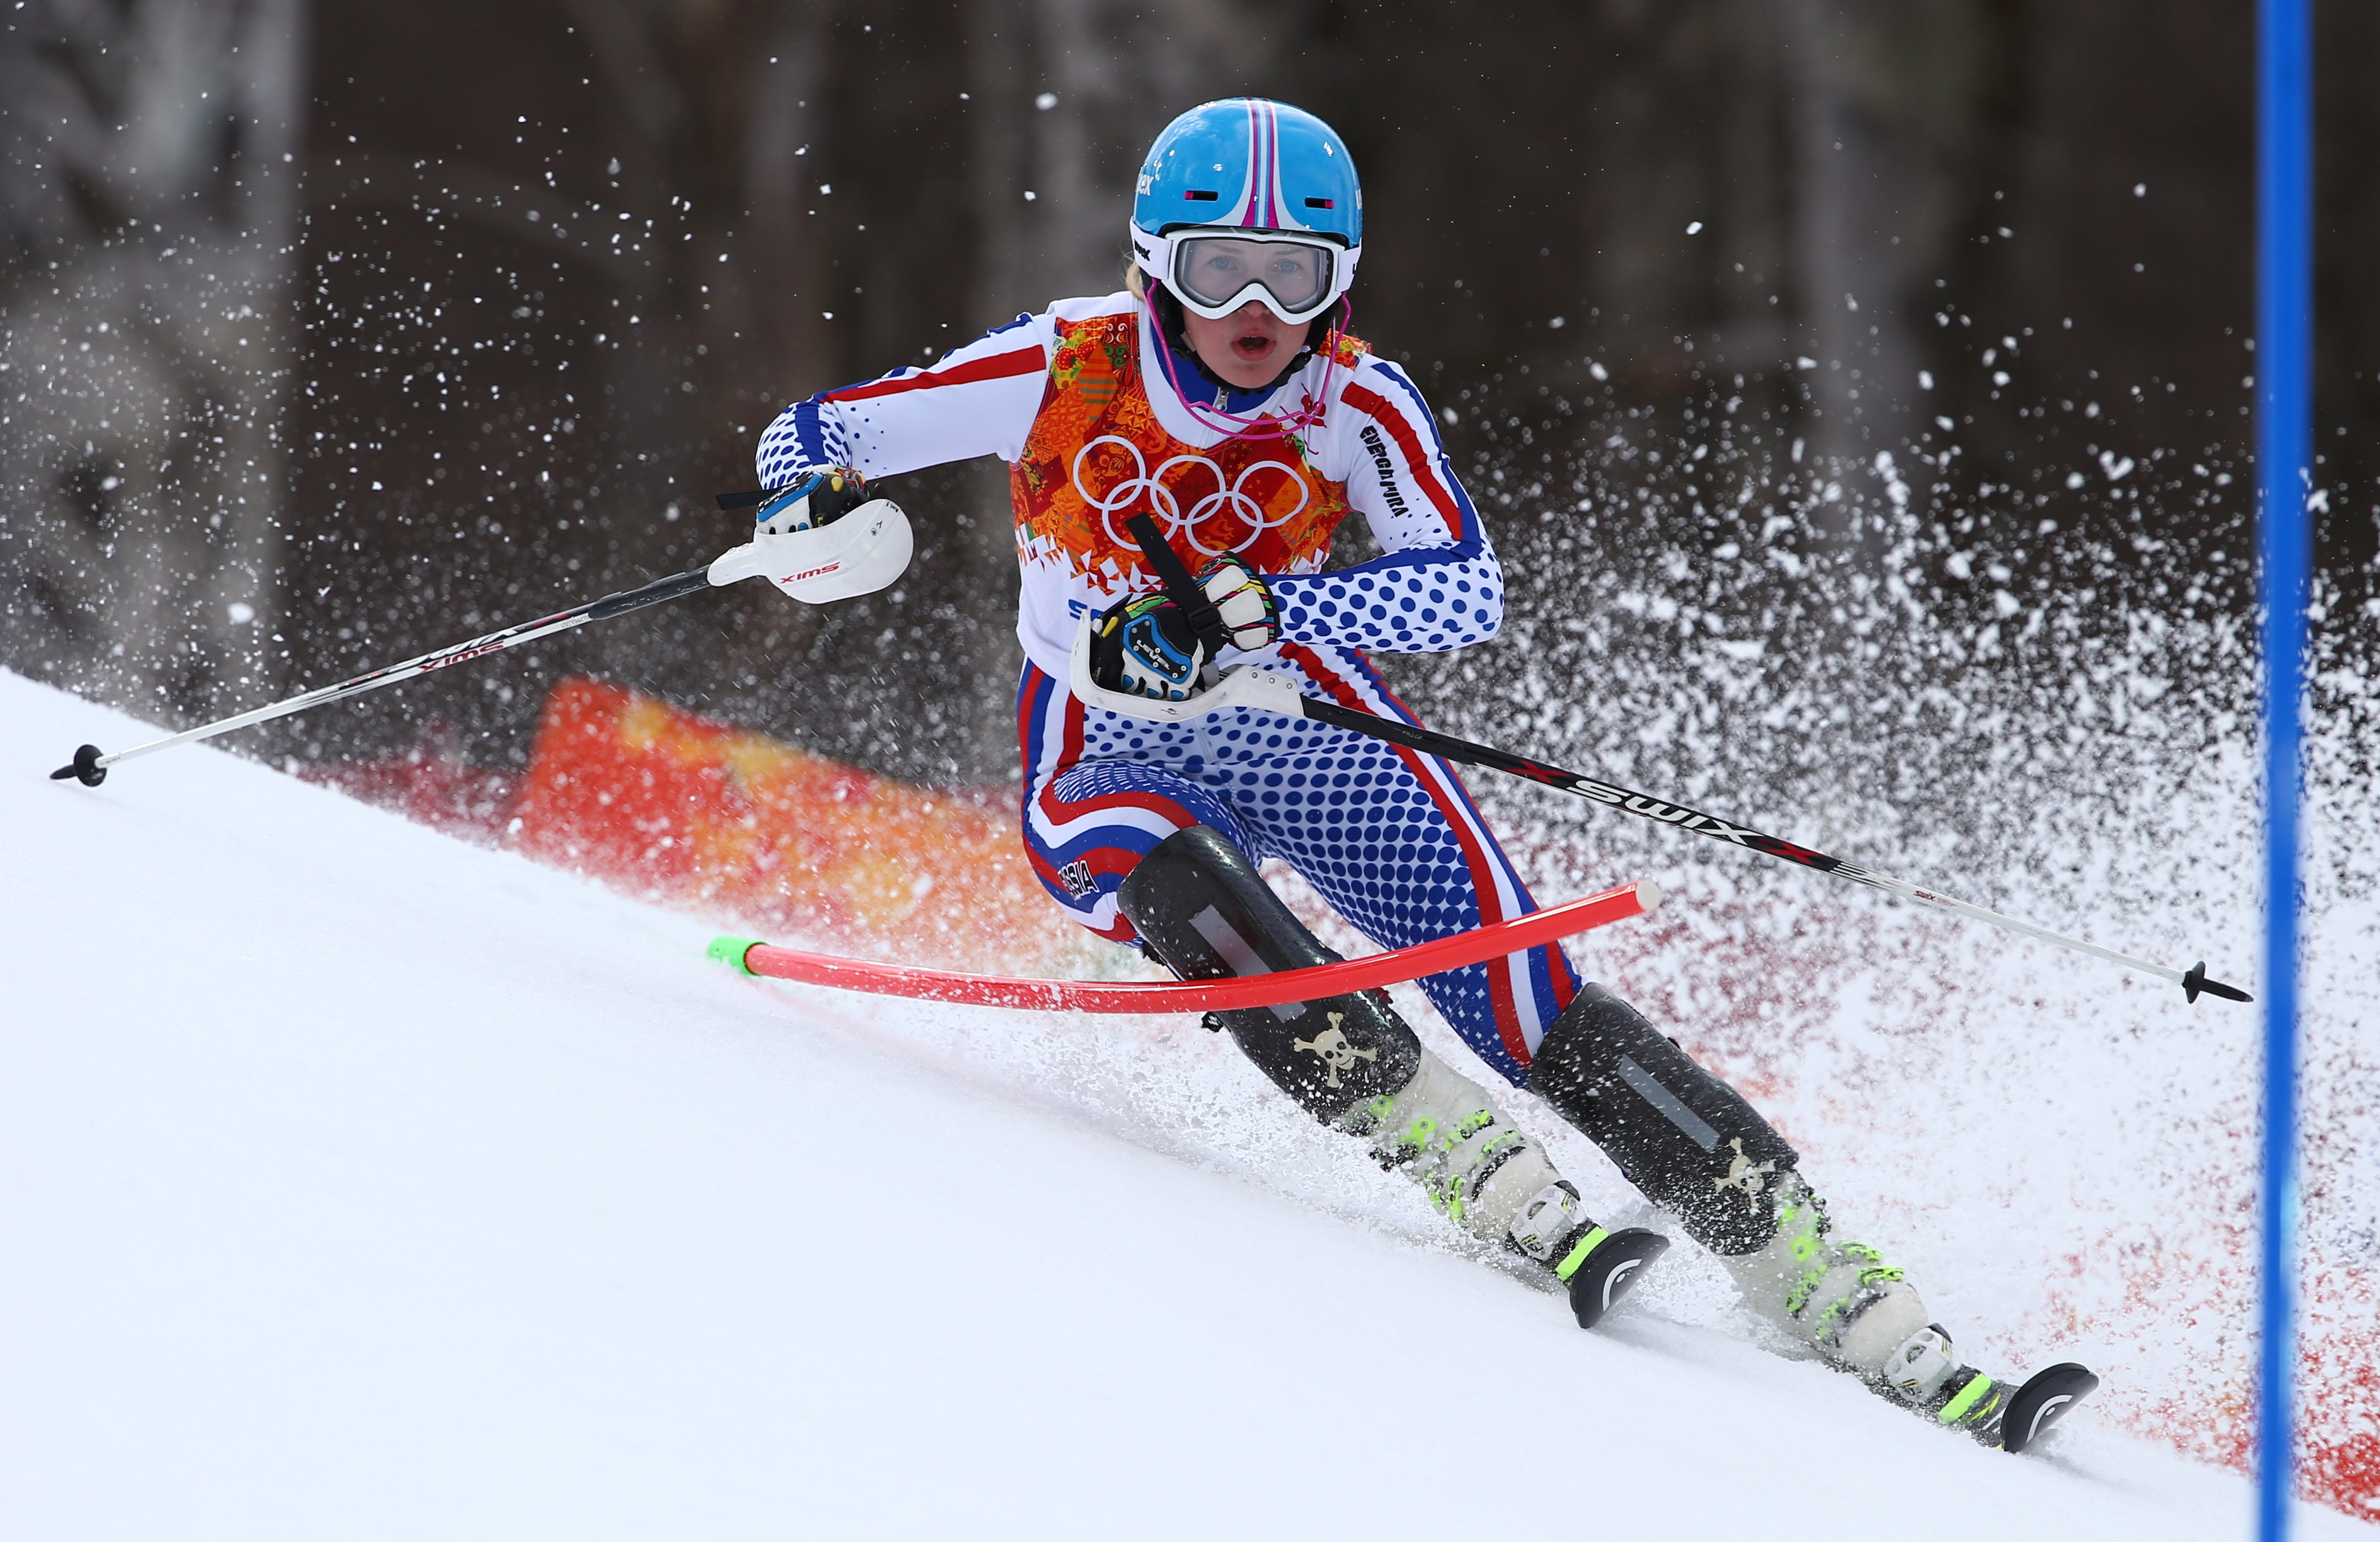 Russia's Yelena Yakovishina passes a gate in the slalom portion of the women's supercombined in the Sochi 2014 Winter Olympics, Monday, Feb. 10, 2014, in Krasnaya Polyana, Russia.(AP Photo/Alessandro Trovati)